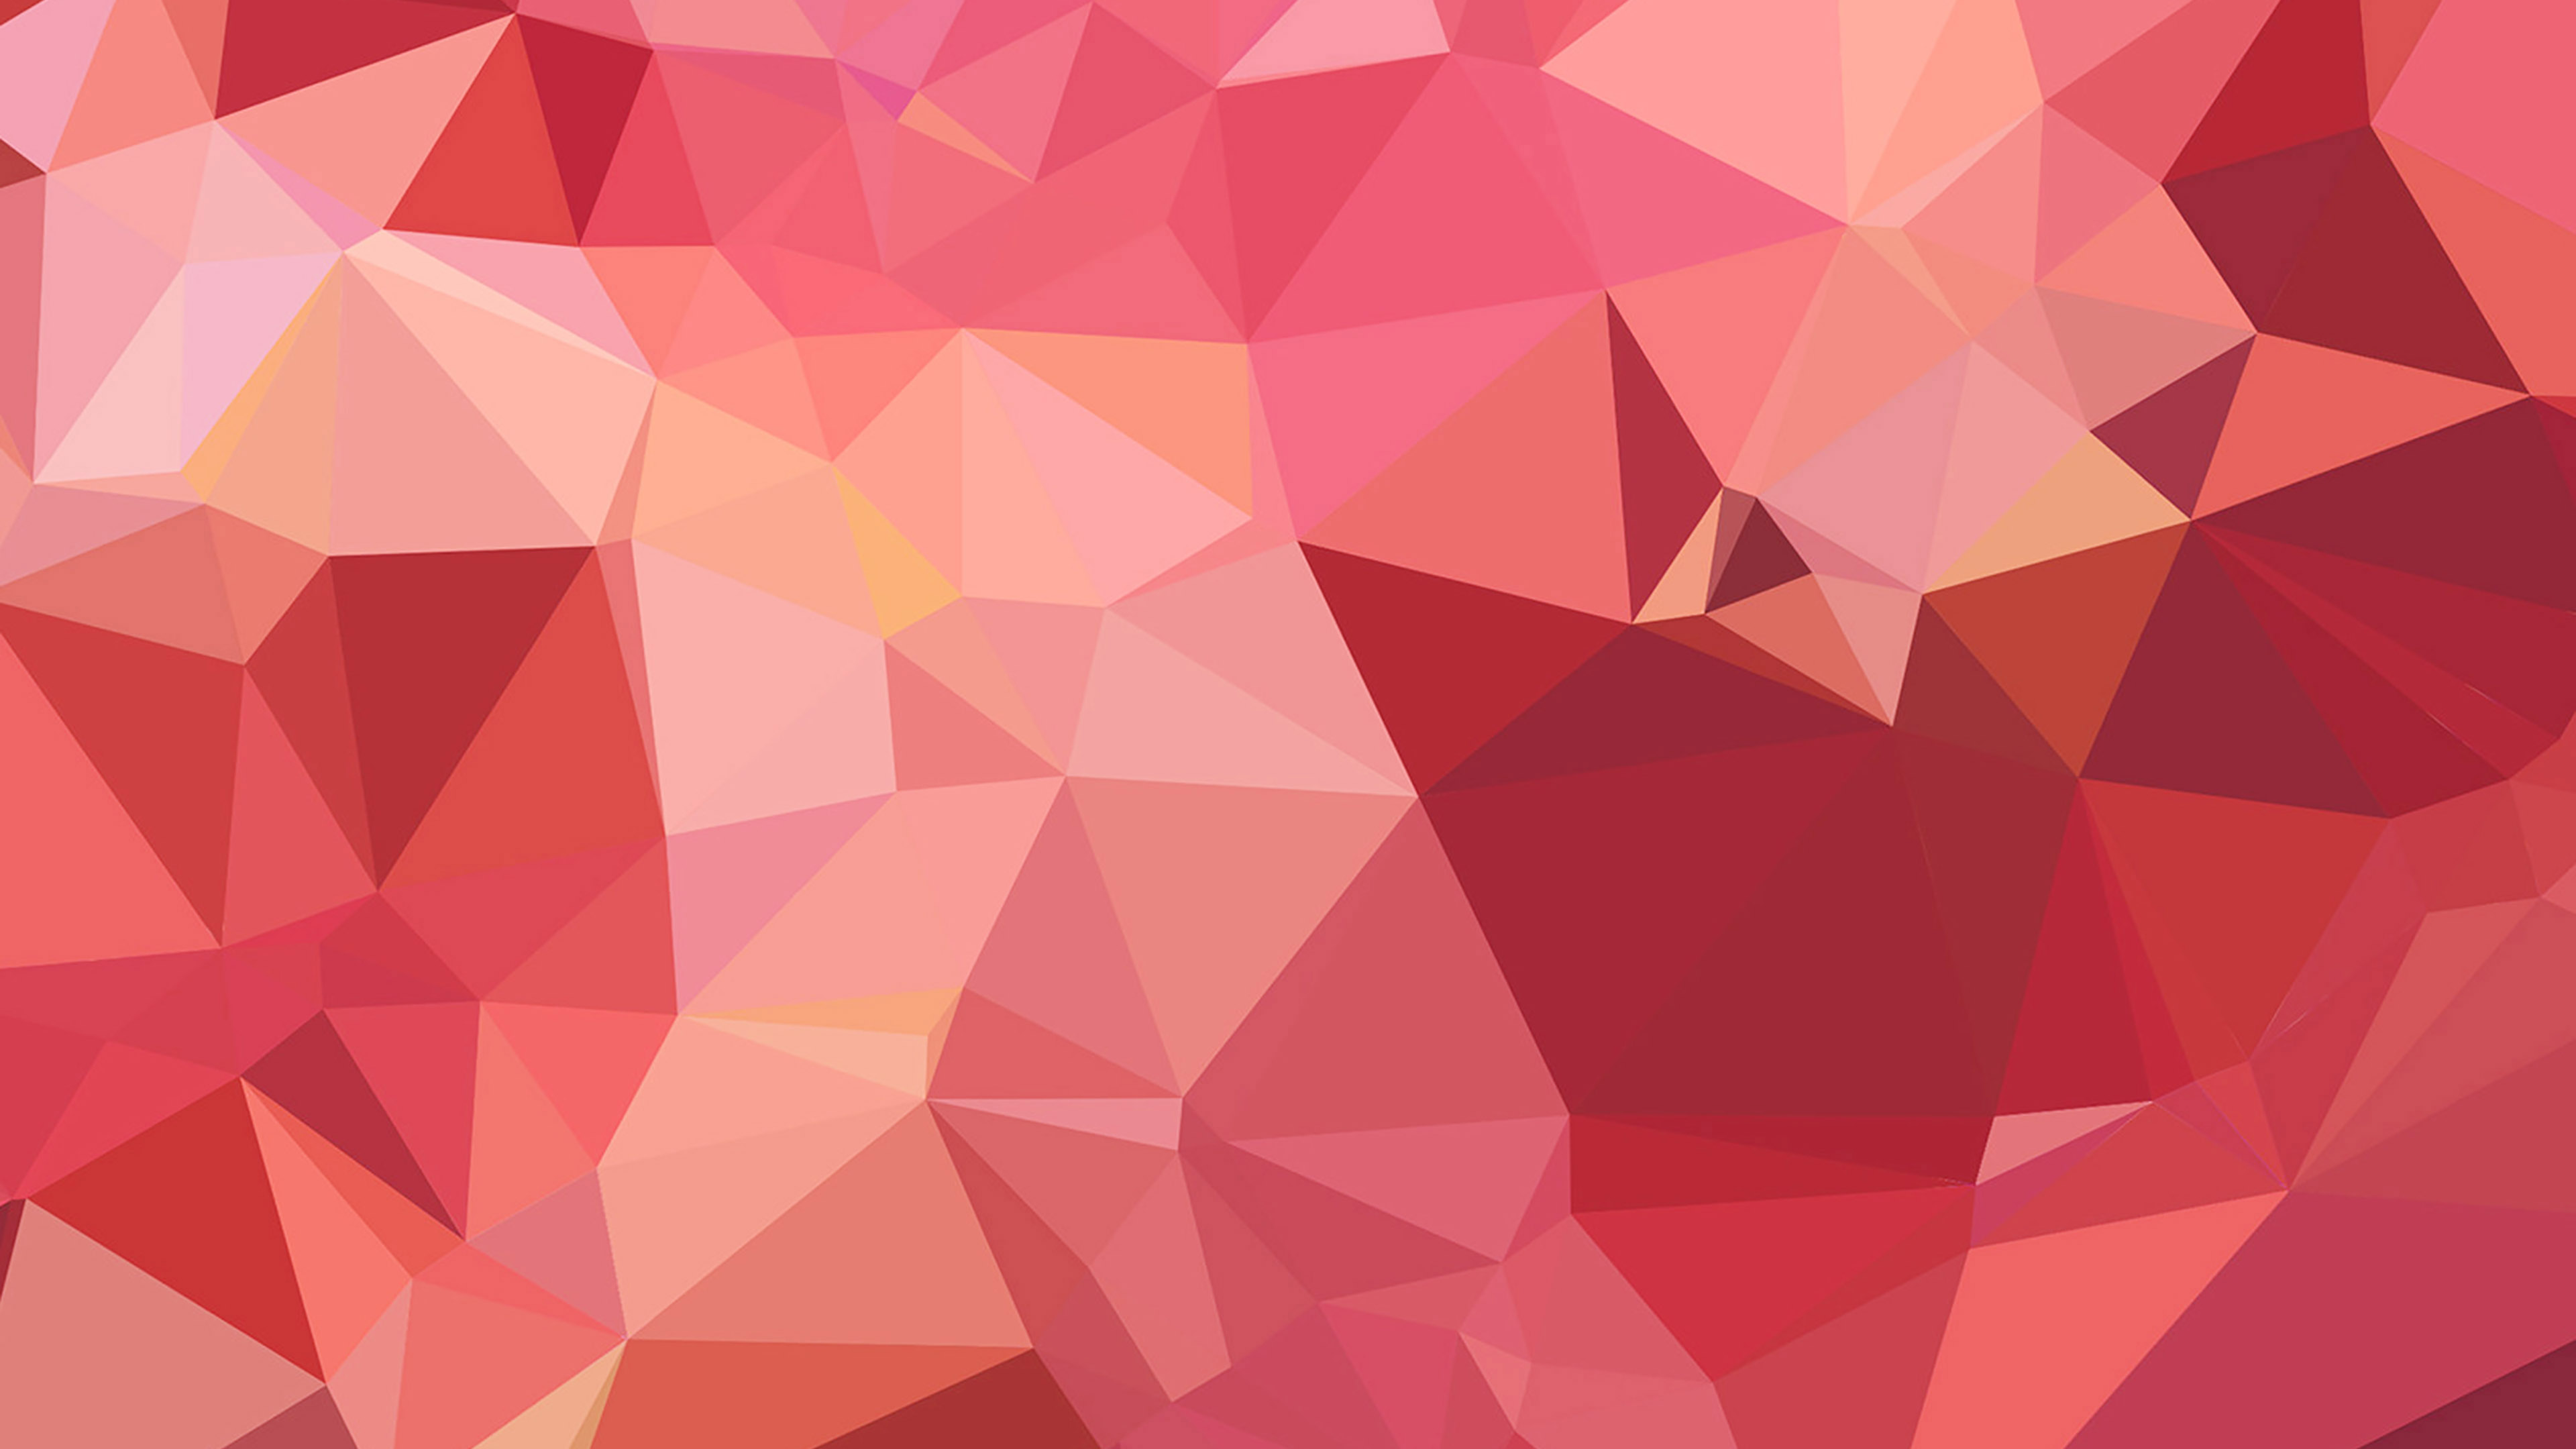 Love Triangle Wallpapers : vc95-triangle-of-love-red-patterns - Papers.co